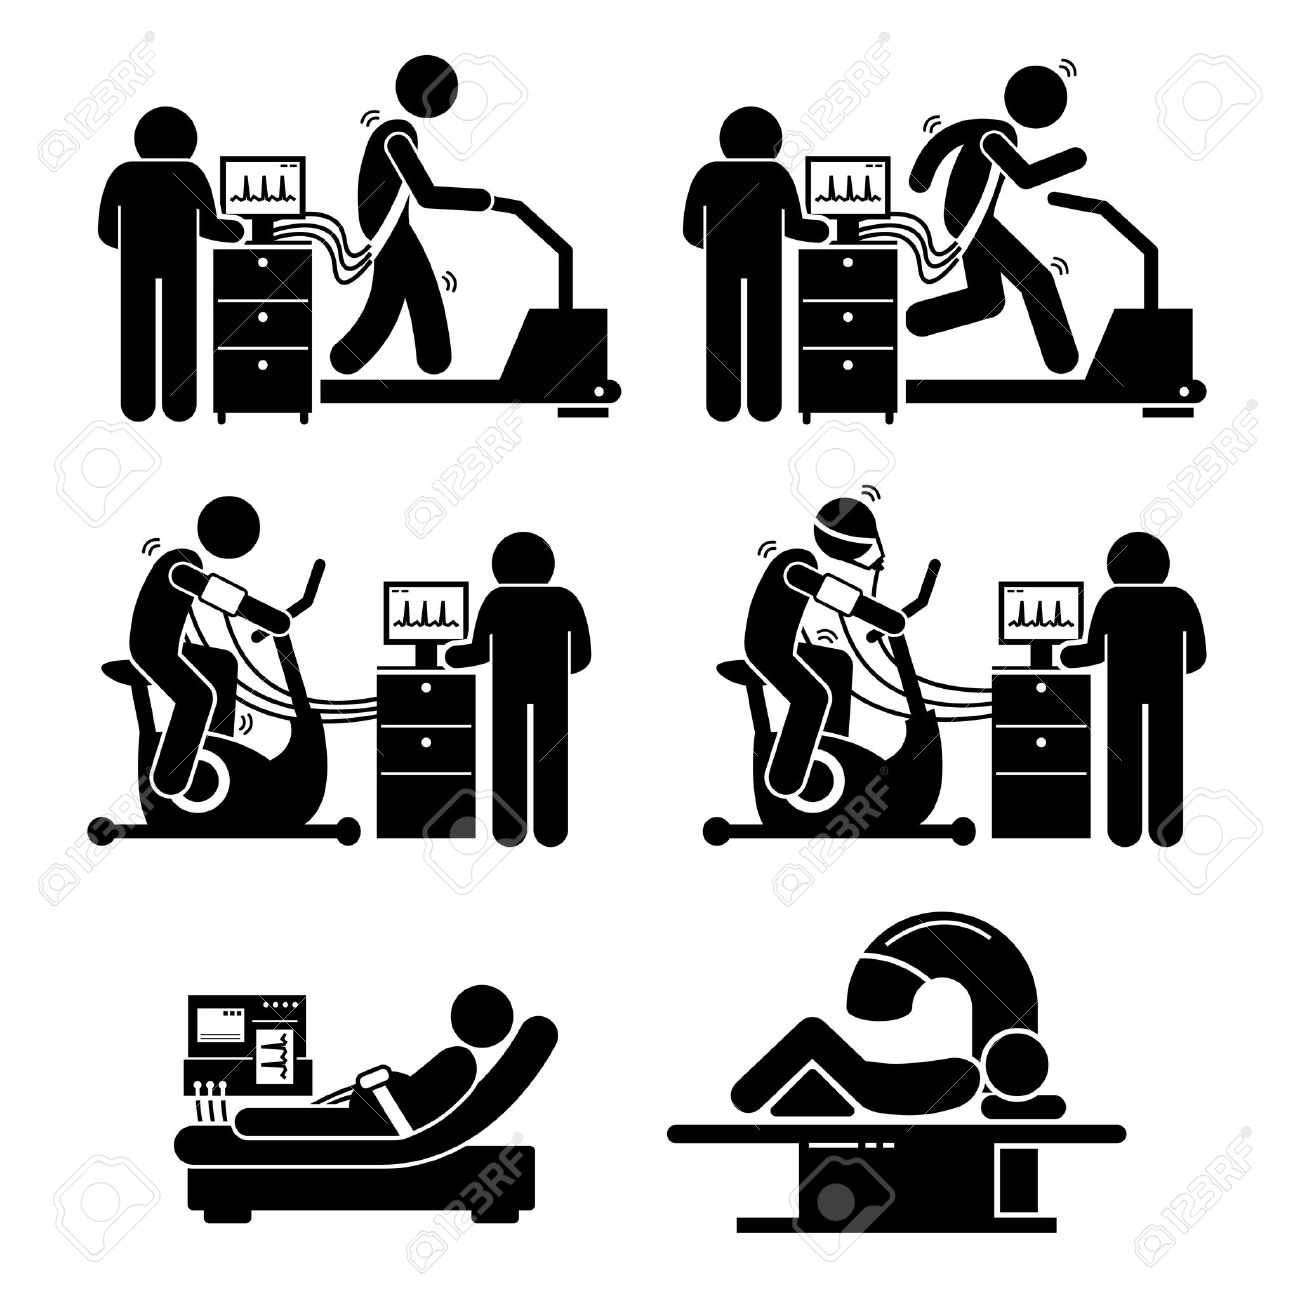 Exercise Stress Test for Heart Disease Stick Figure Pictogram Icons - 52340750